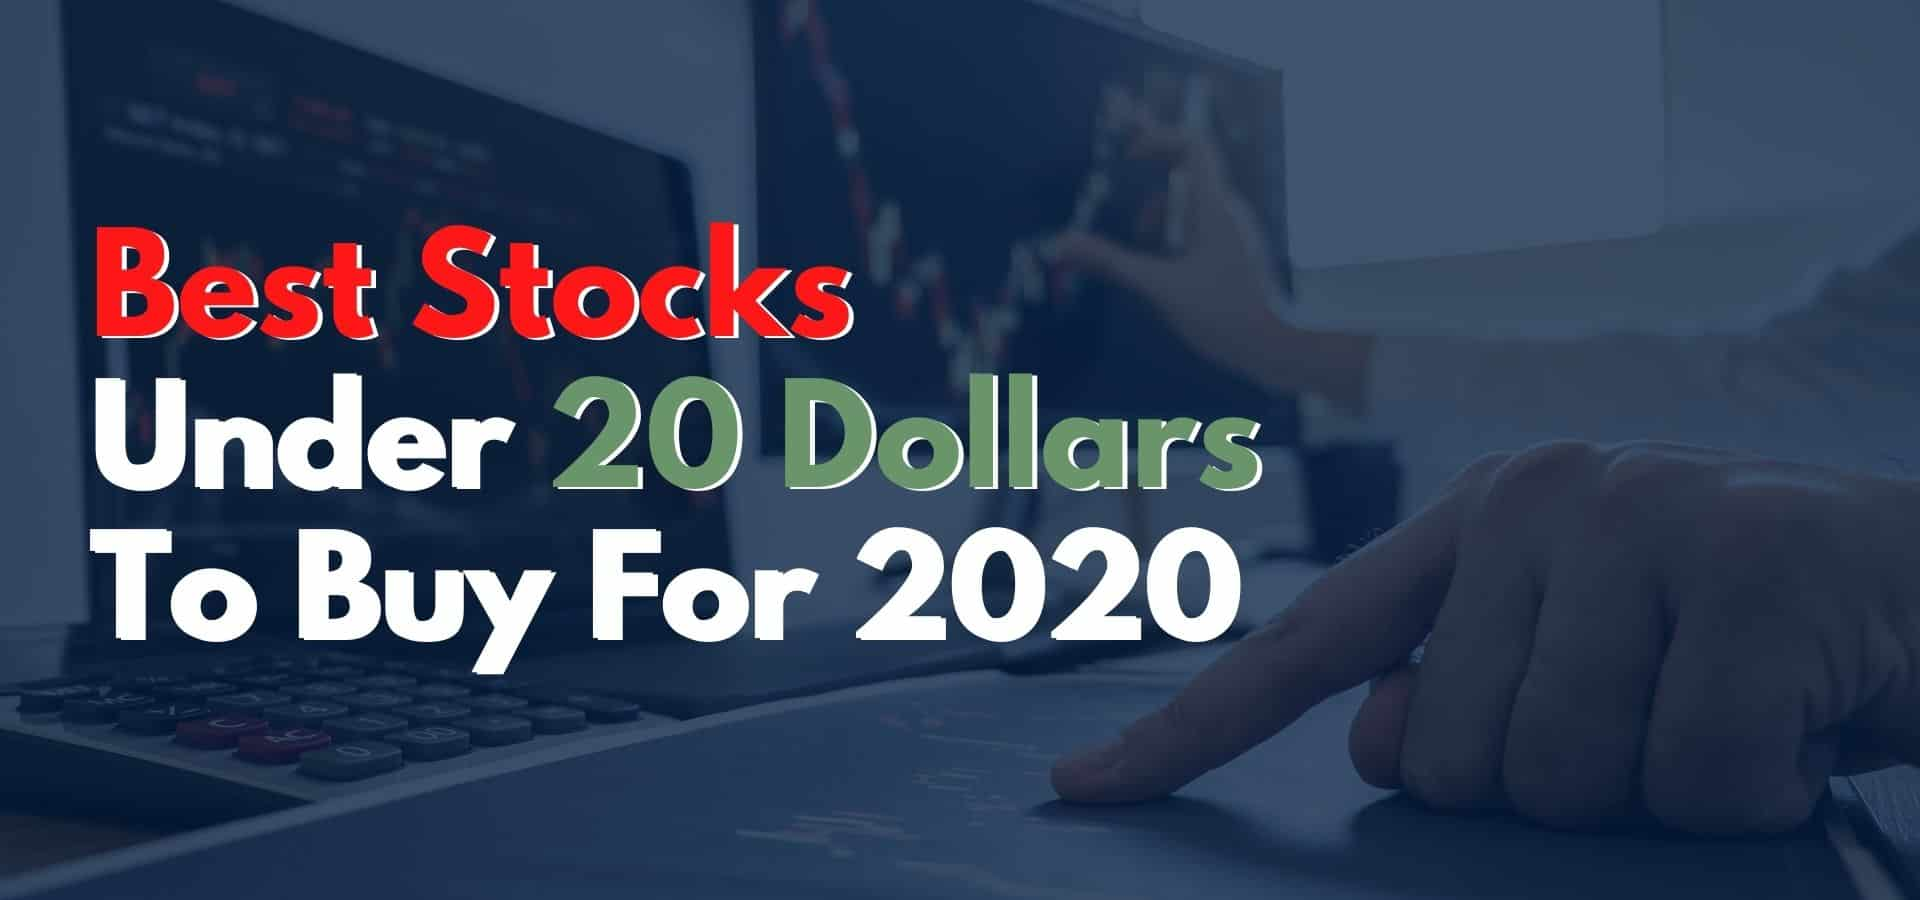 These Are The 6 Best Stocks Under 20 Dollars To Buy For 2020